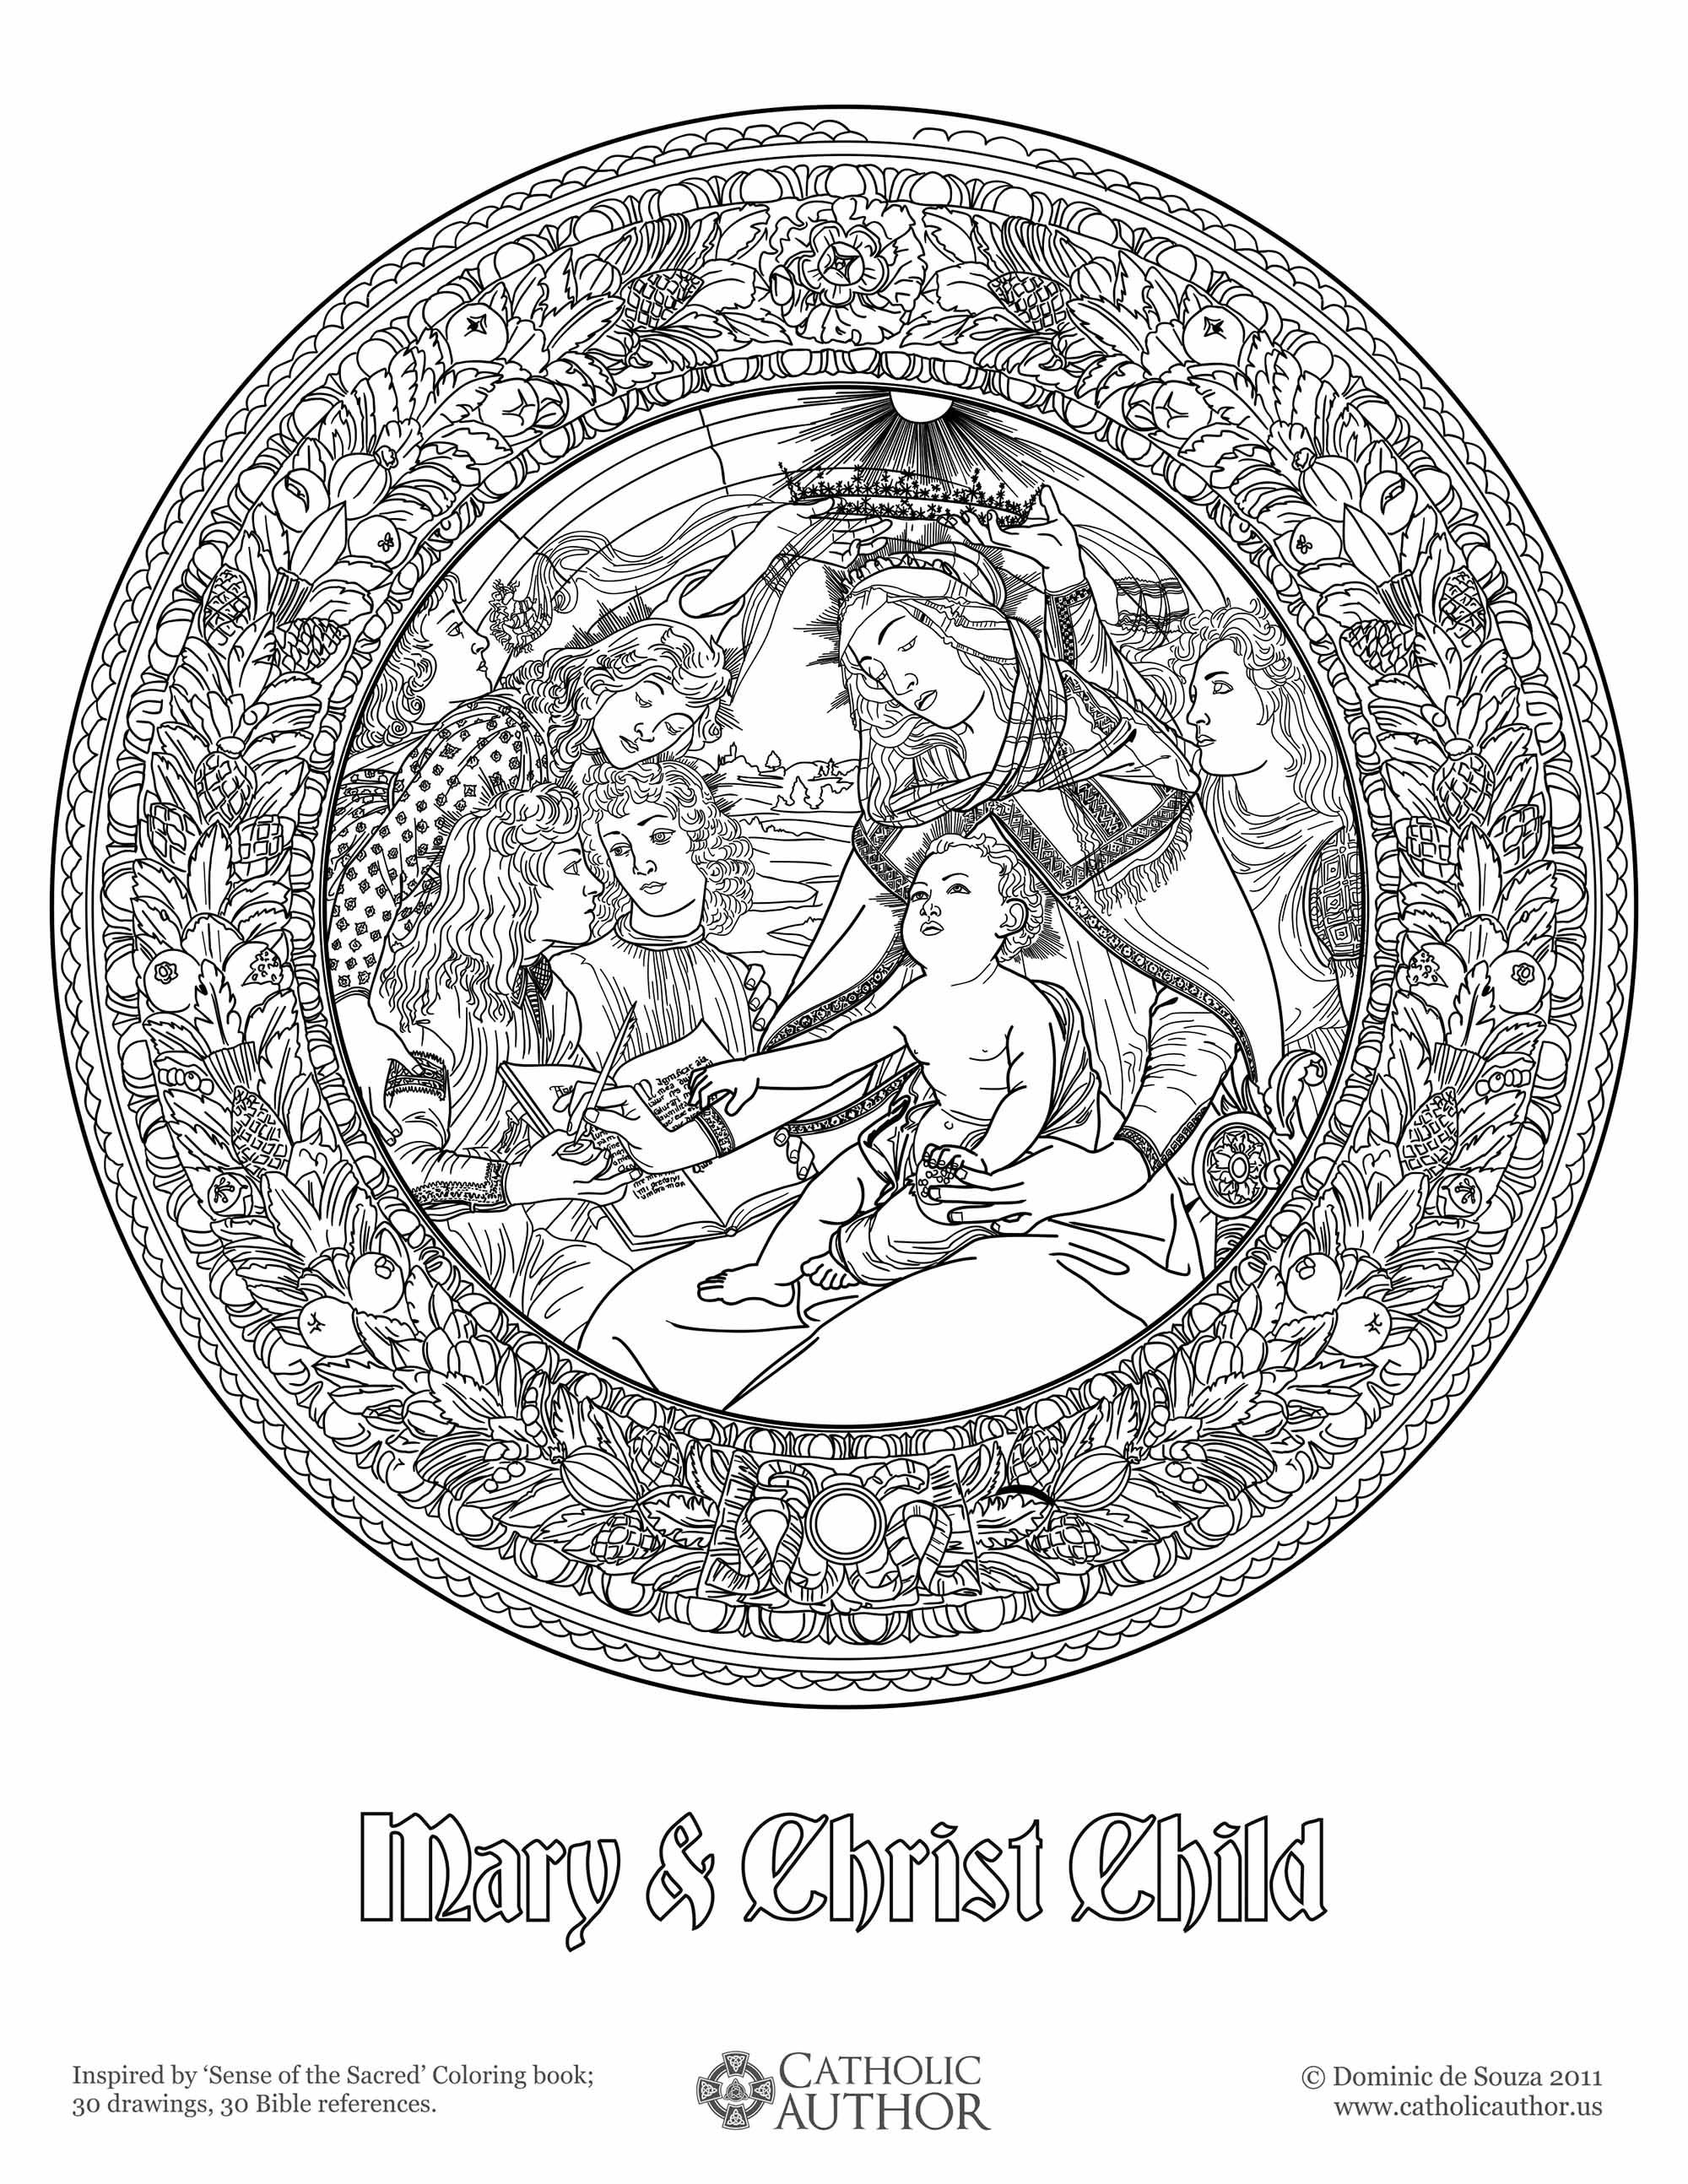 Mary & Christ Child - Free Hand-Drawn Catholic Coloring Pictures ...